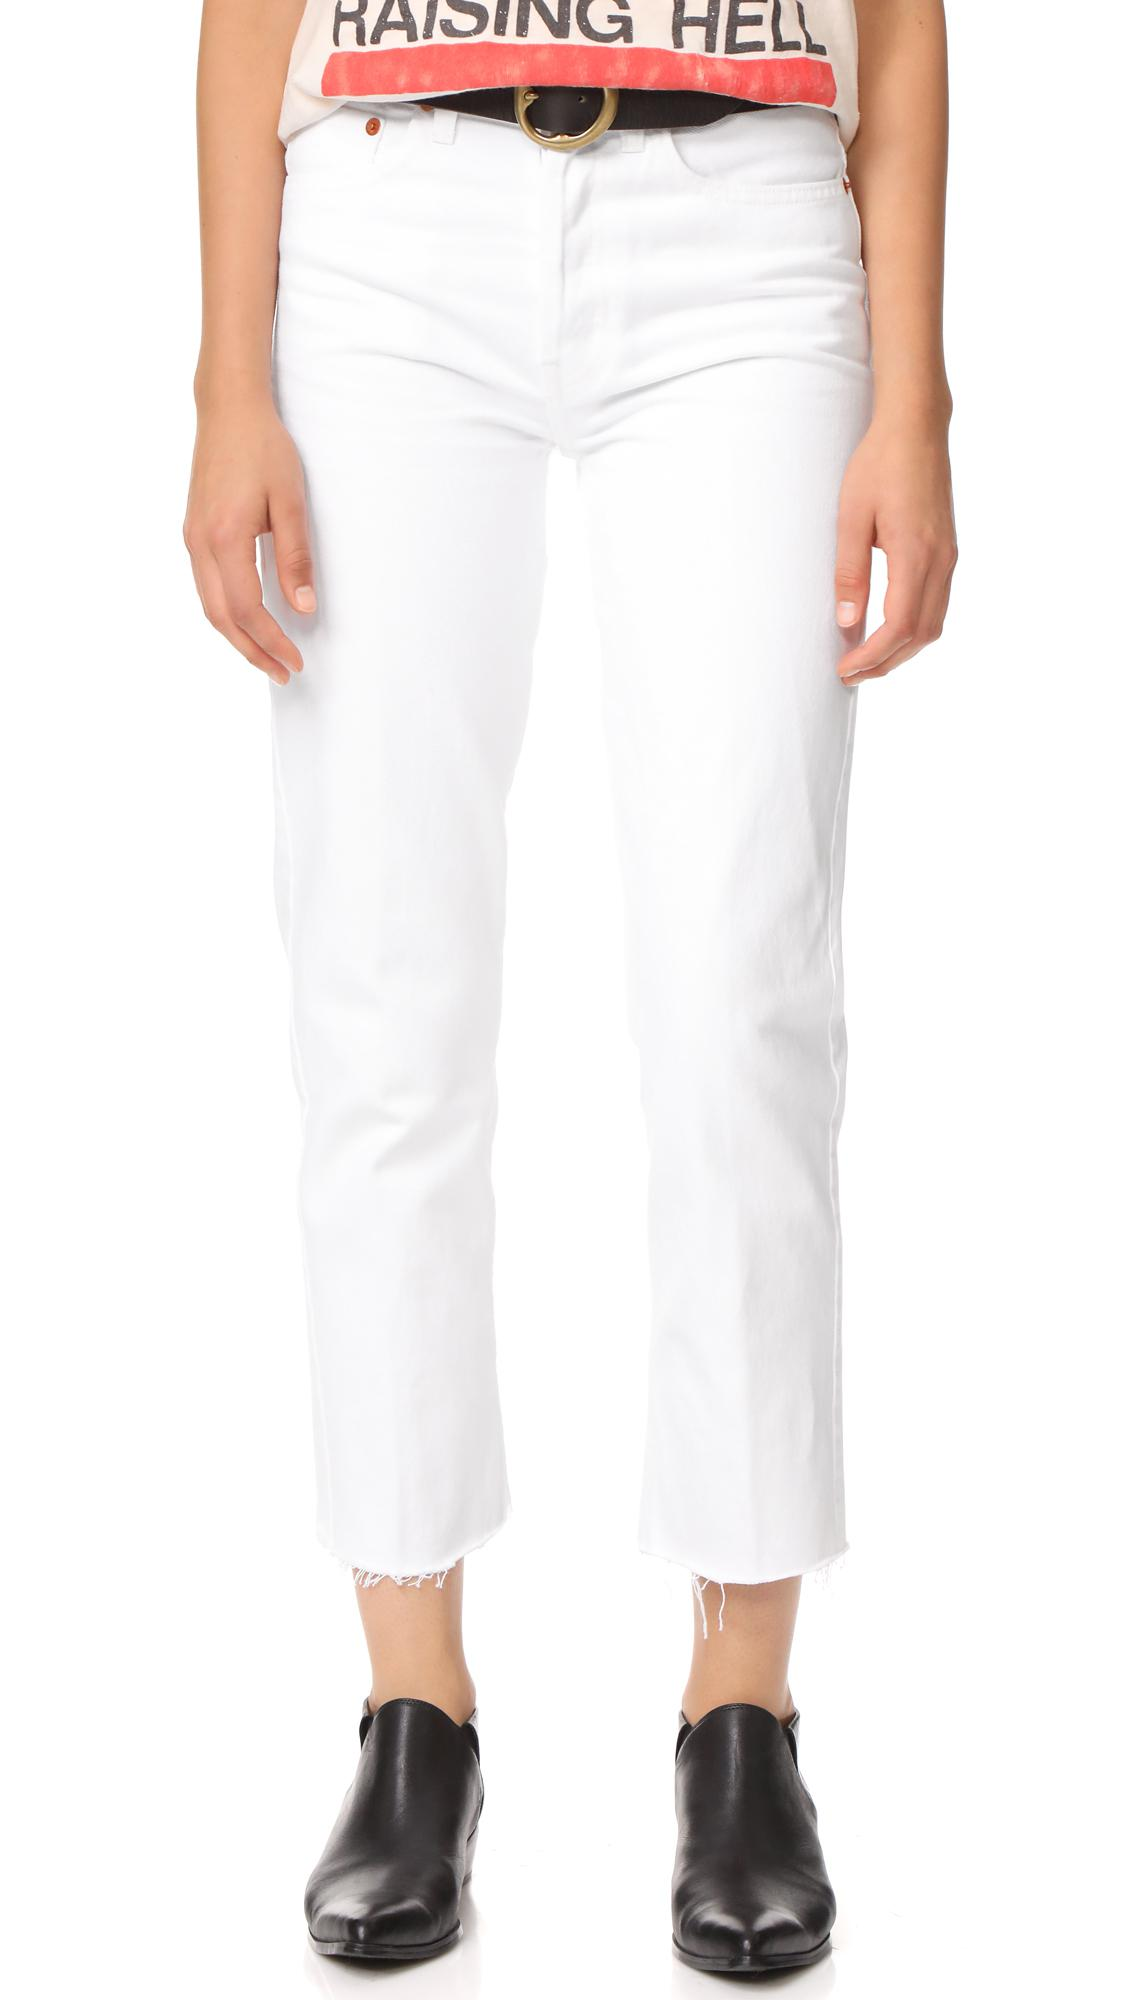 a1d480b98b61 Lyst - RE DONE High Rise Rigid Stovepipe Jeans in White